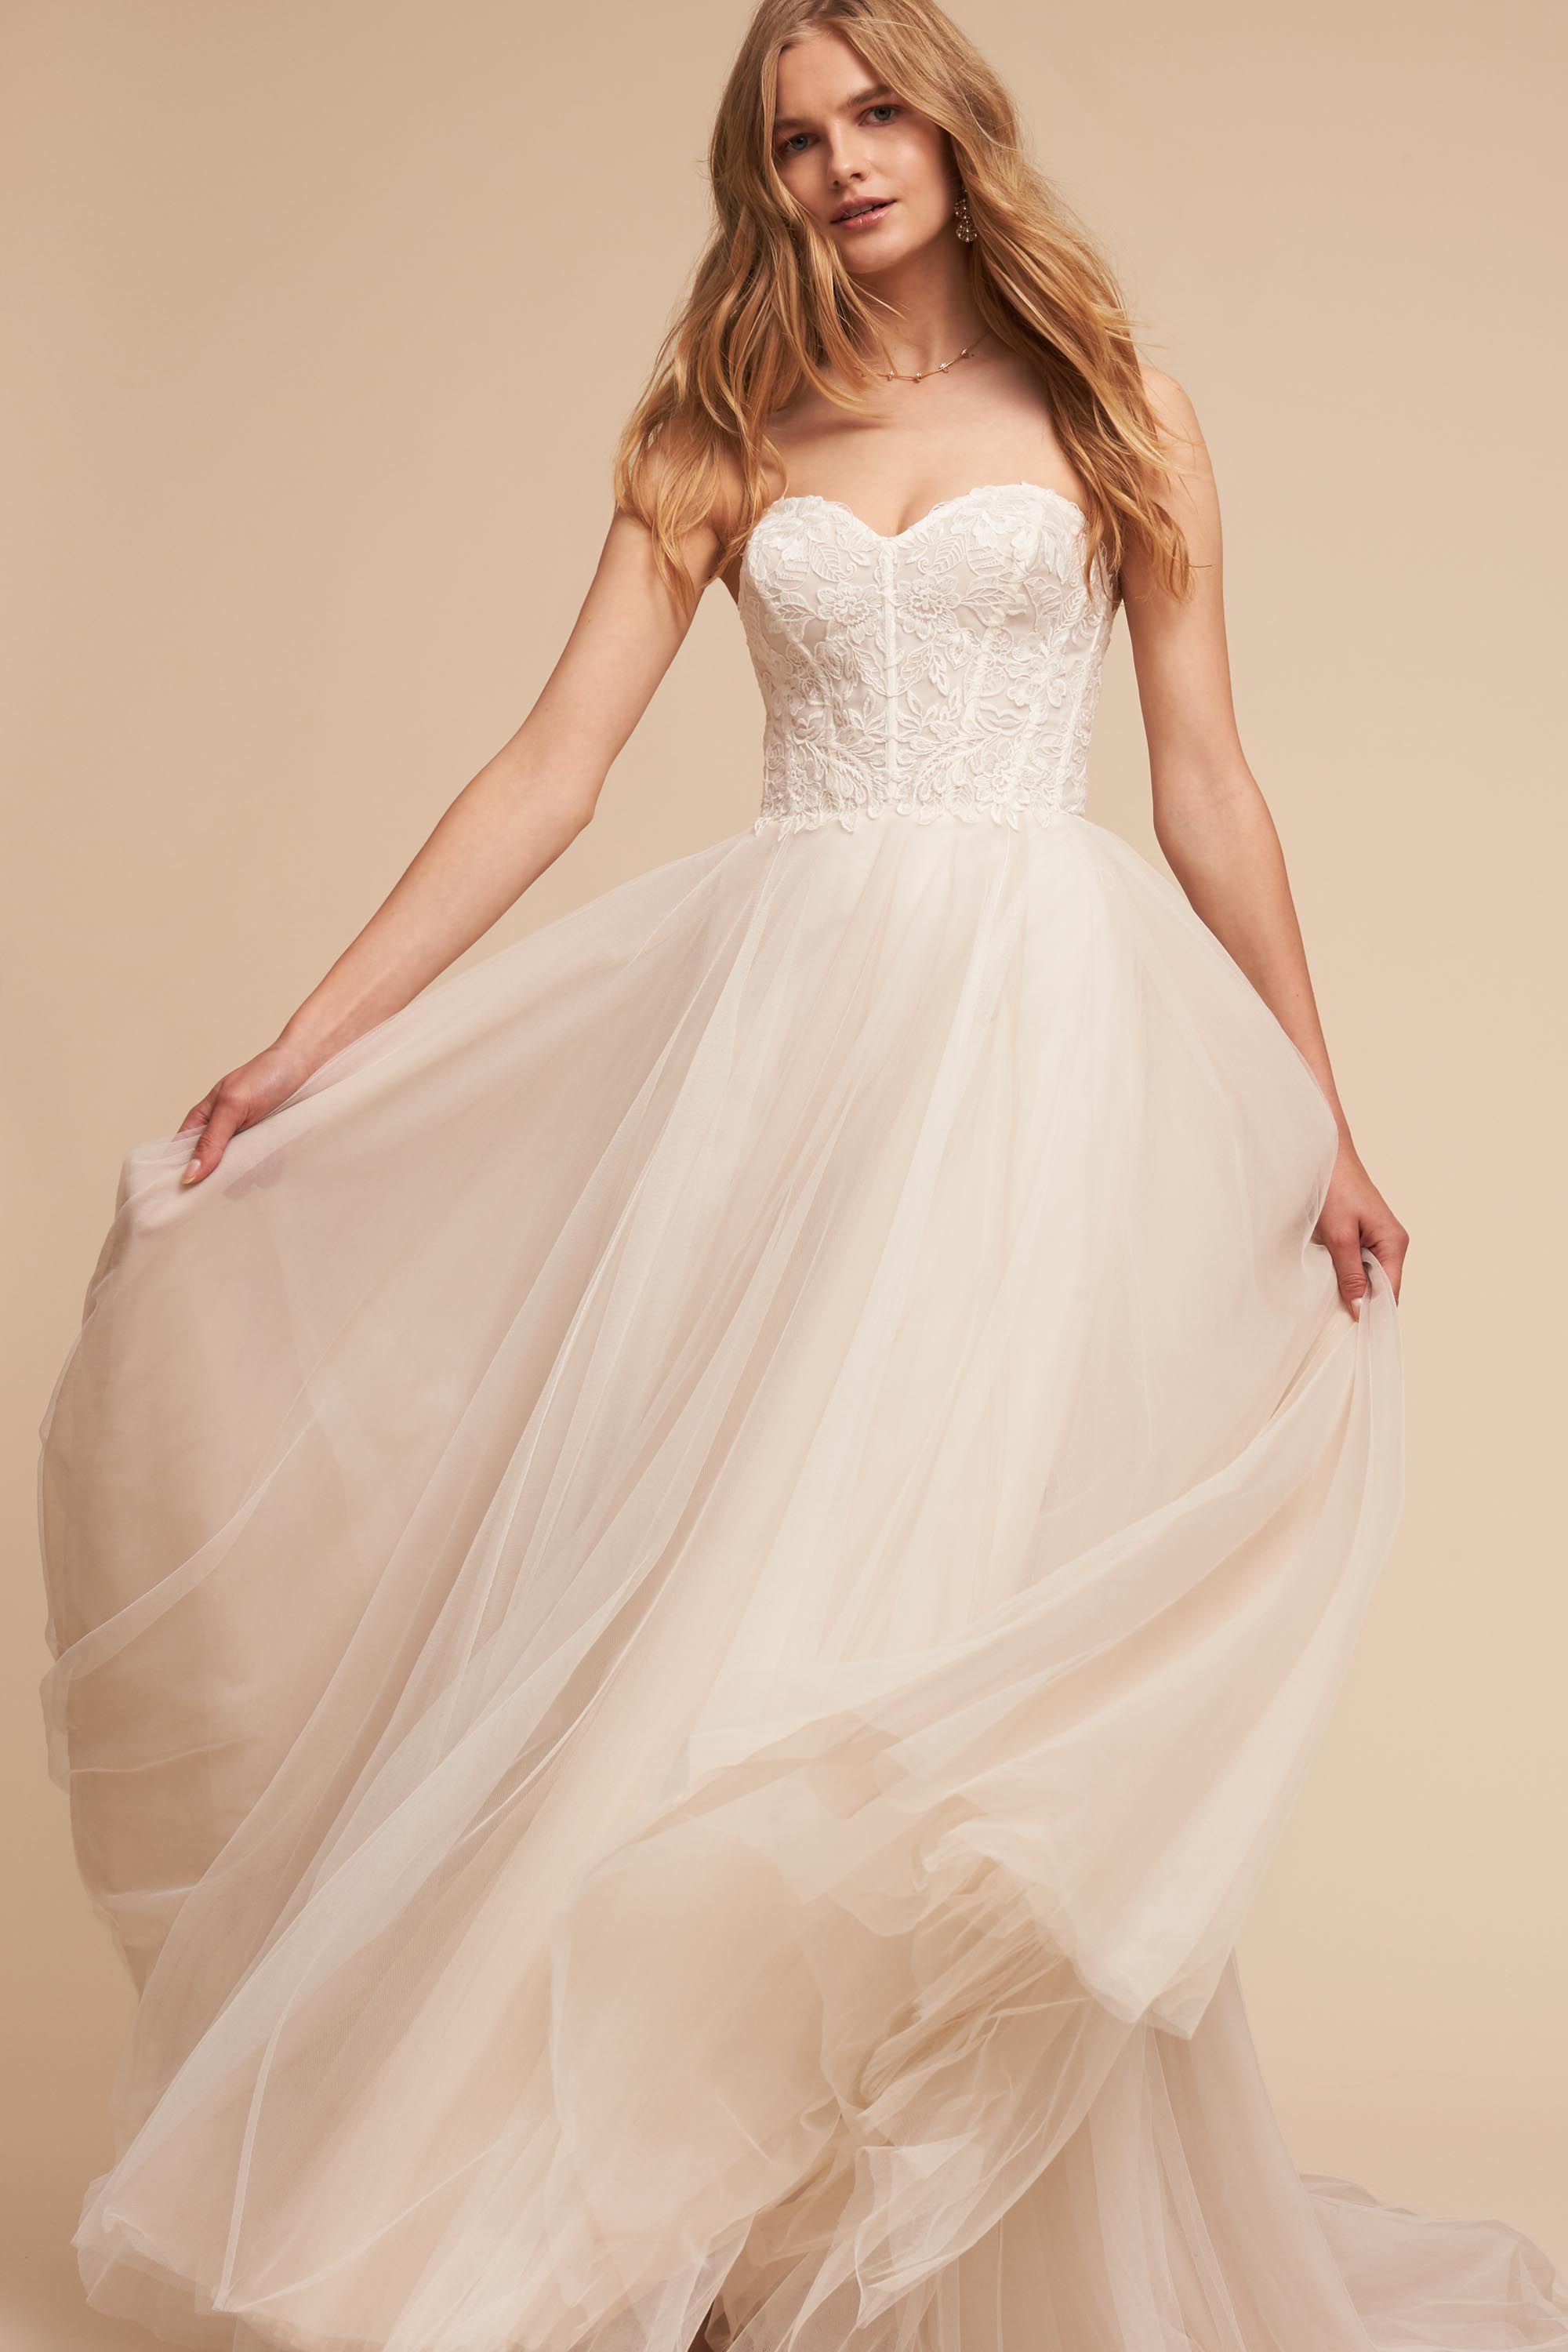 Rowland Gown from @BHLDN   Pirate Wedding Dresses   Pinterest